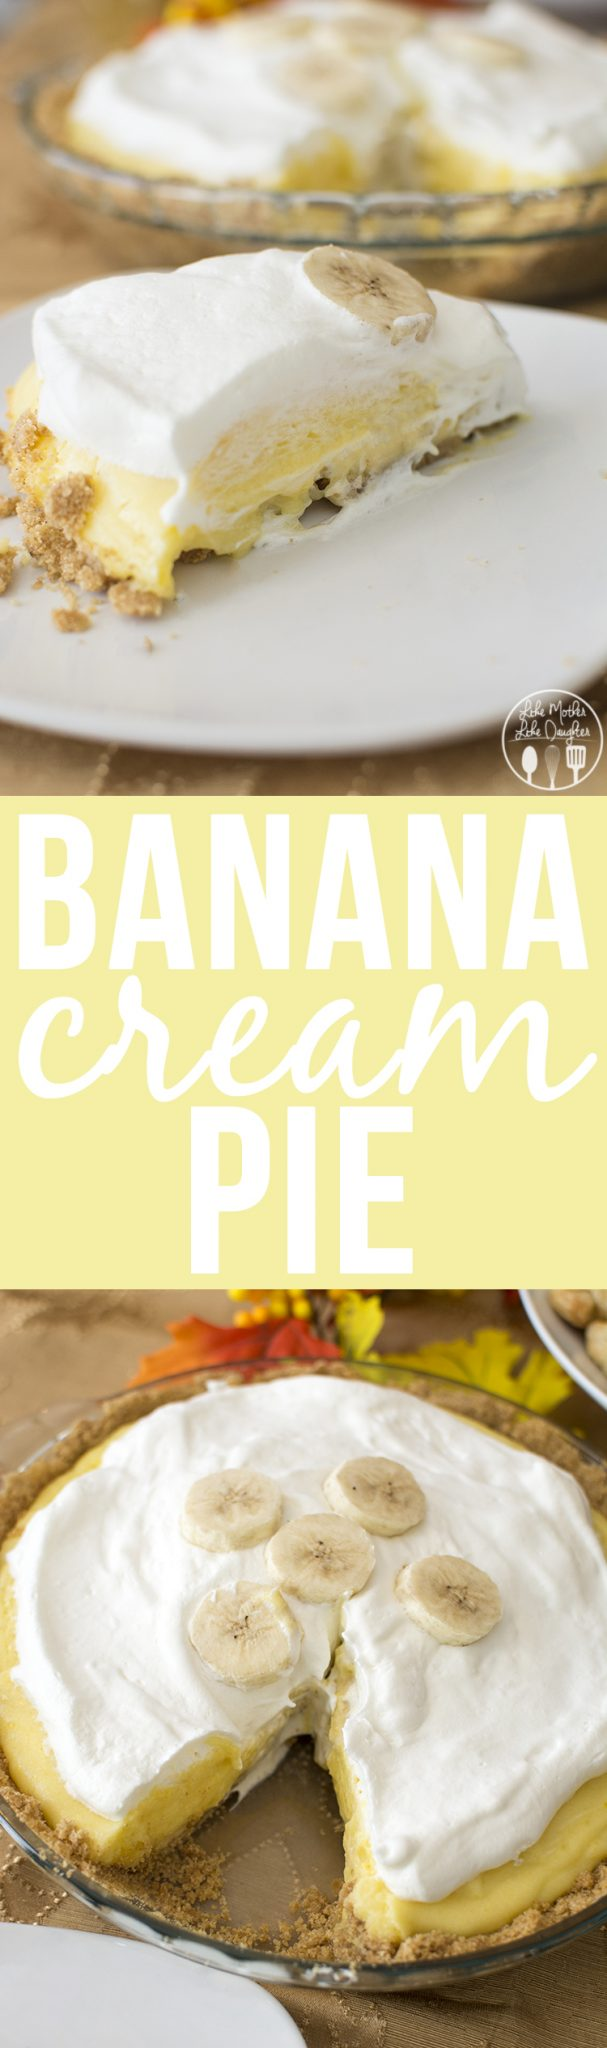 Banana Cream Pie - This delicious and simple banana cream pie is full of banana flavor with a perfect graham cracker crust!